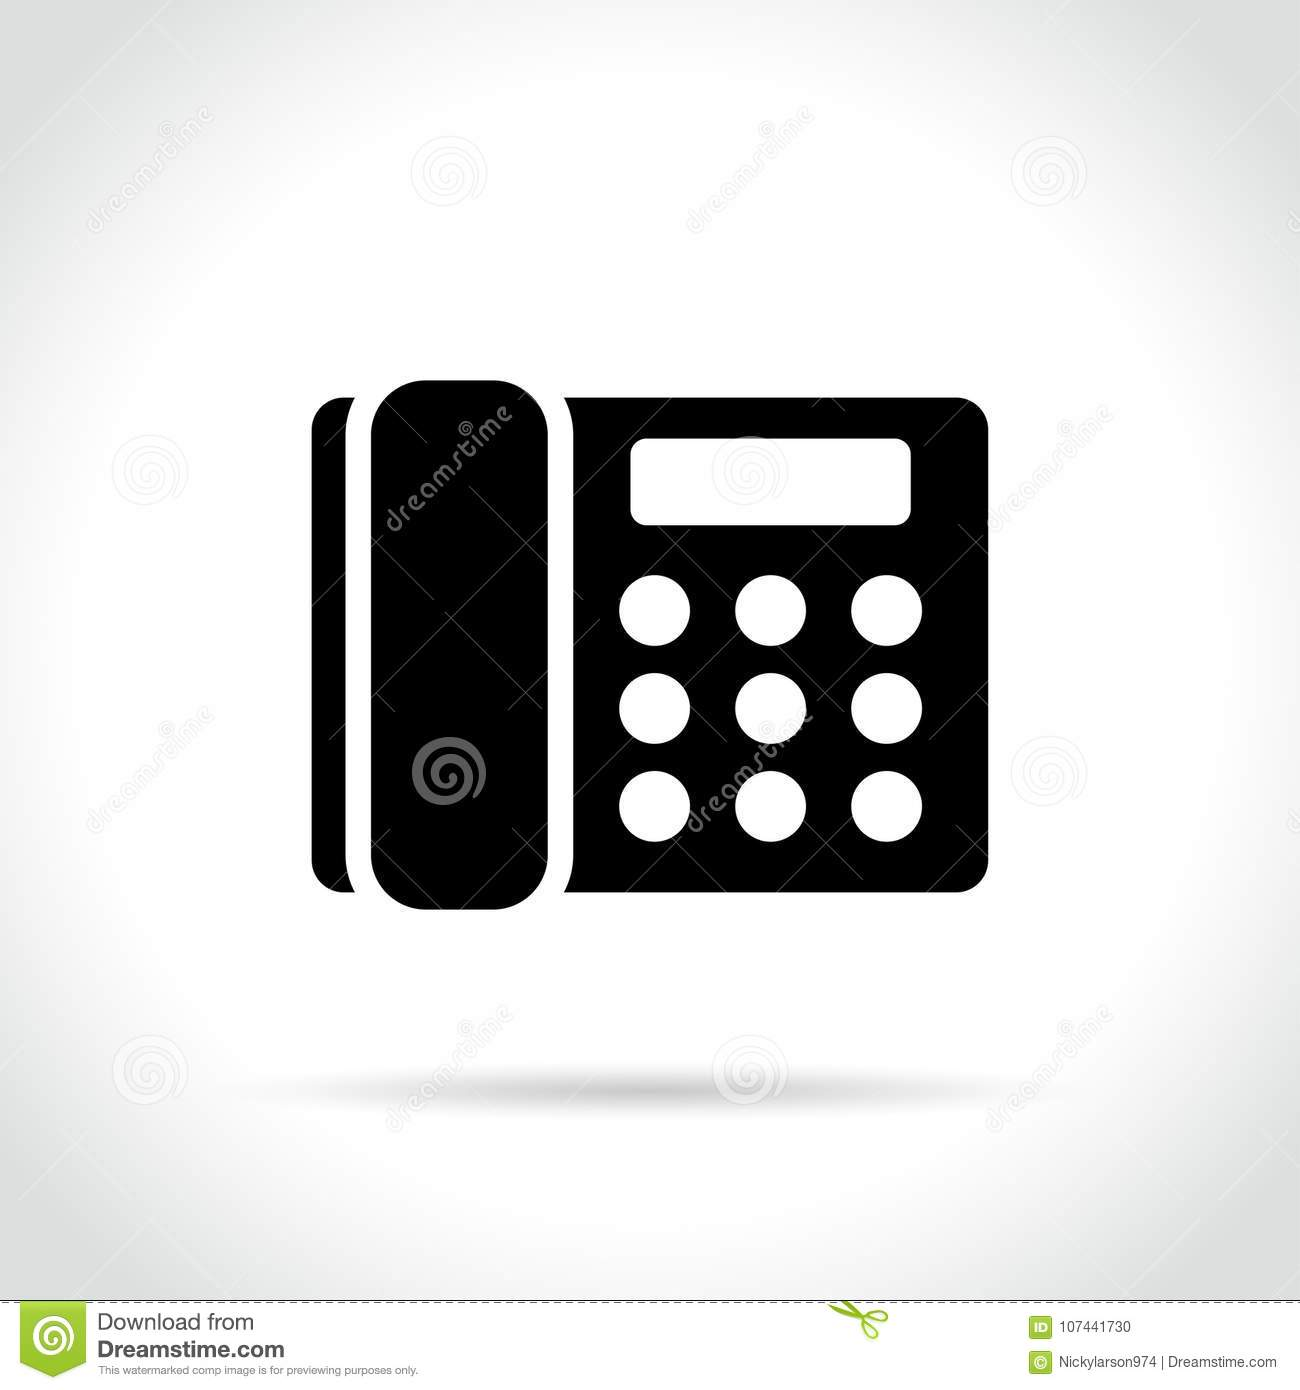 Home Phone Icon On White Background Stock Vector Illustration Of